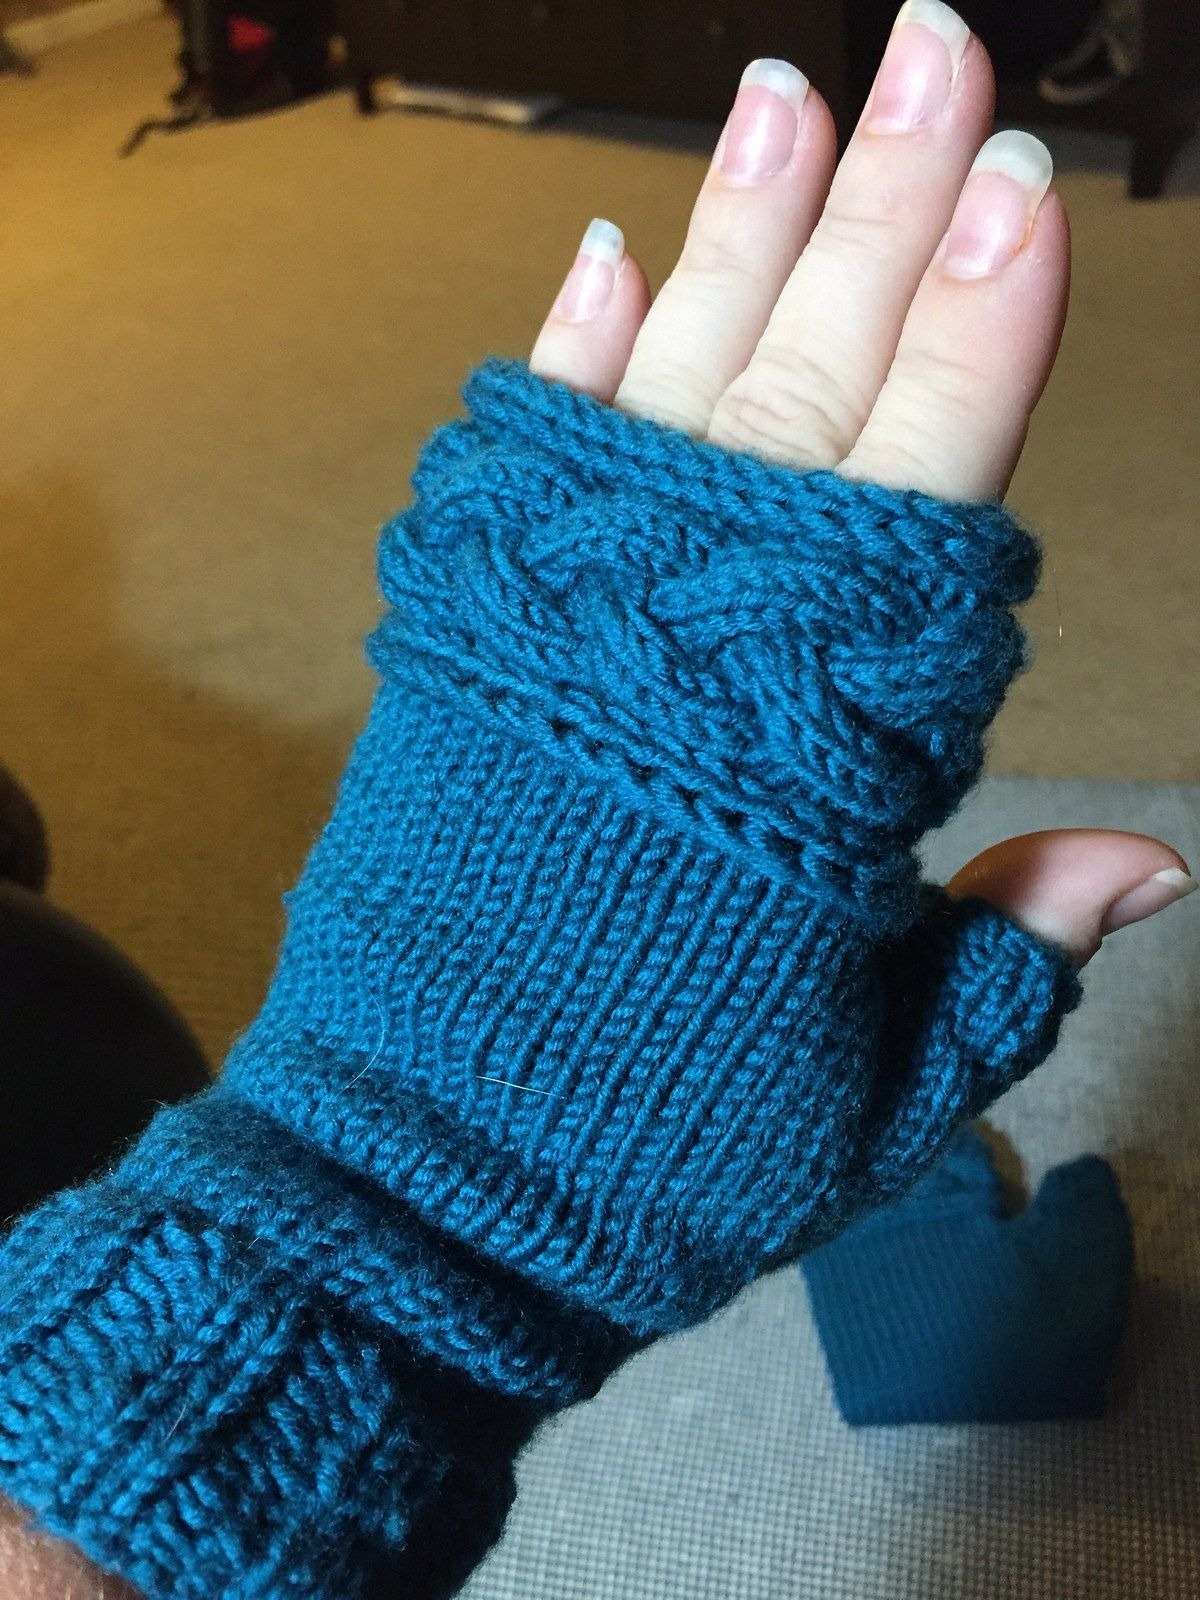 Twisty Mitts Knitting Patterns | Knit patterns, Outlander series and ...